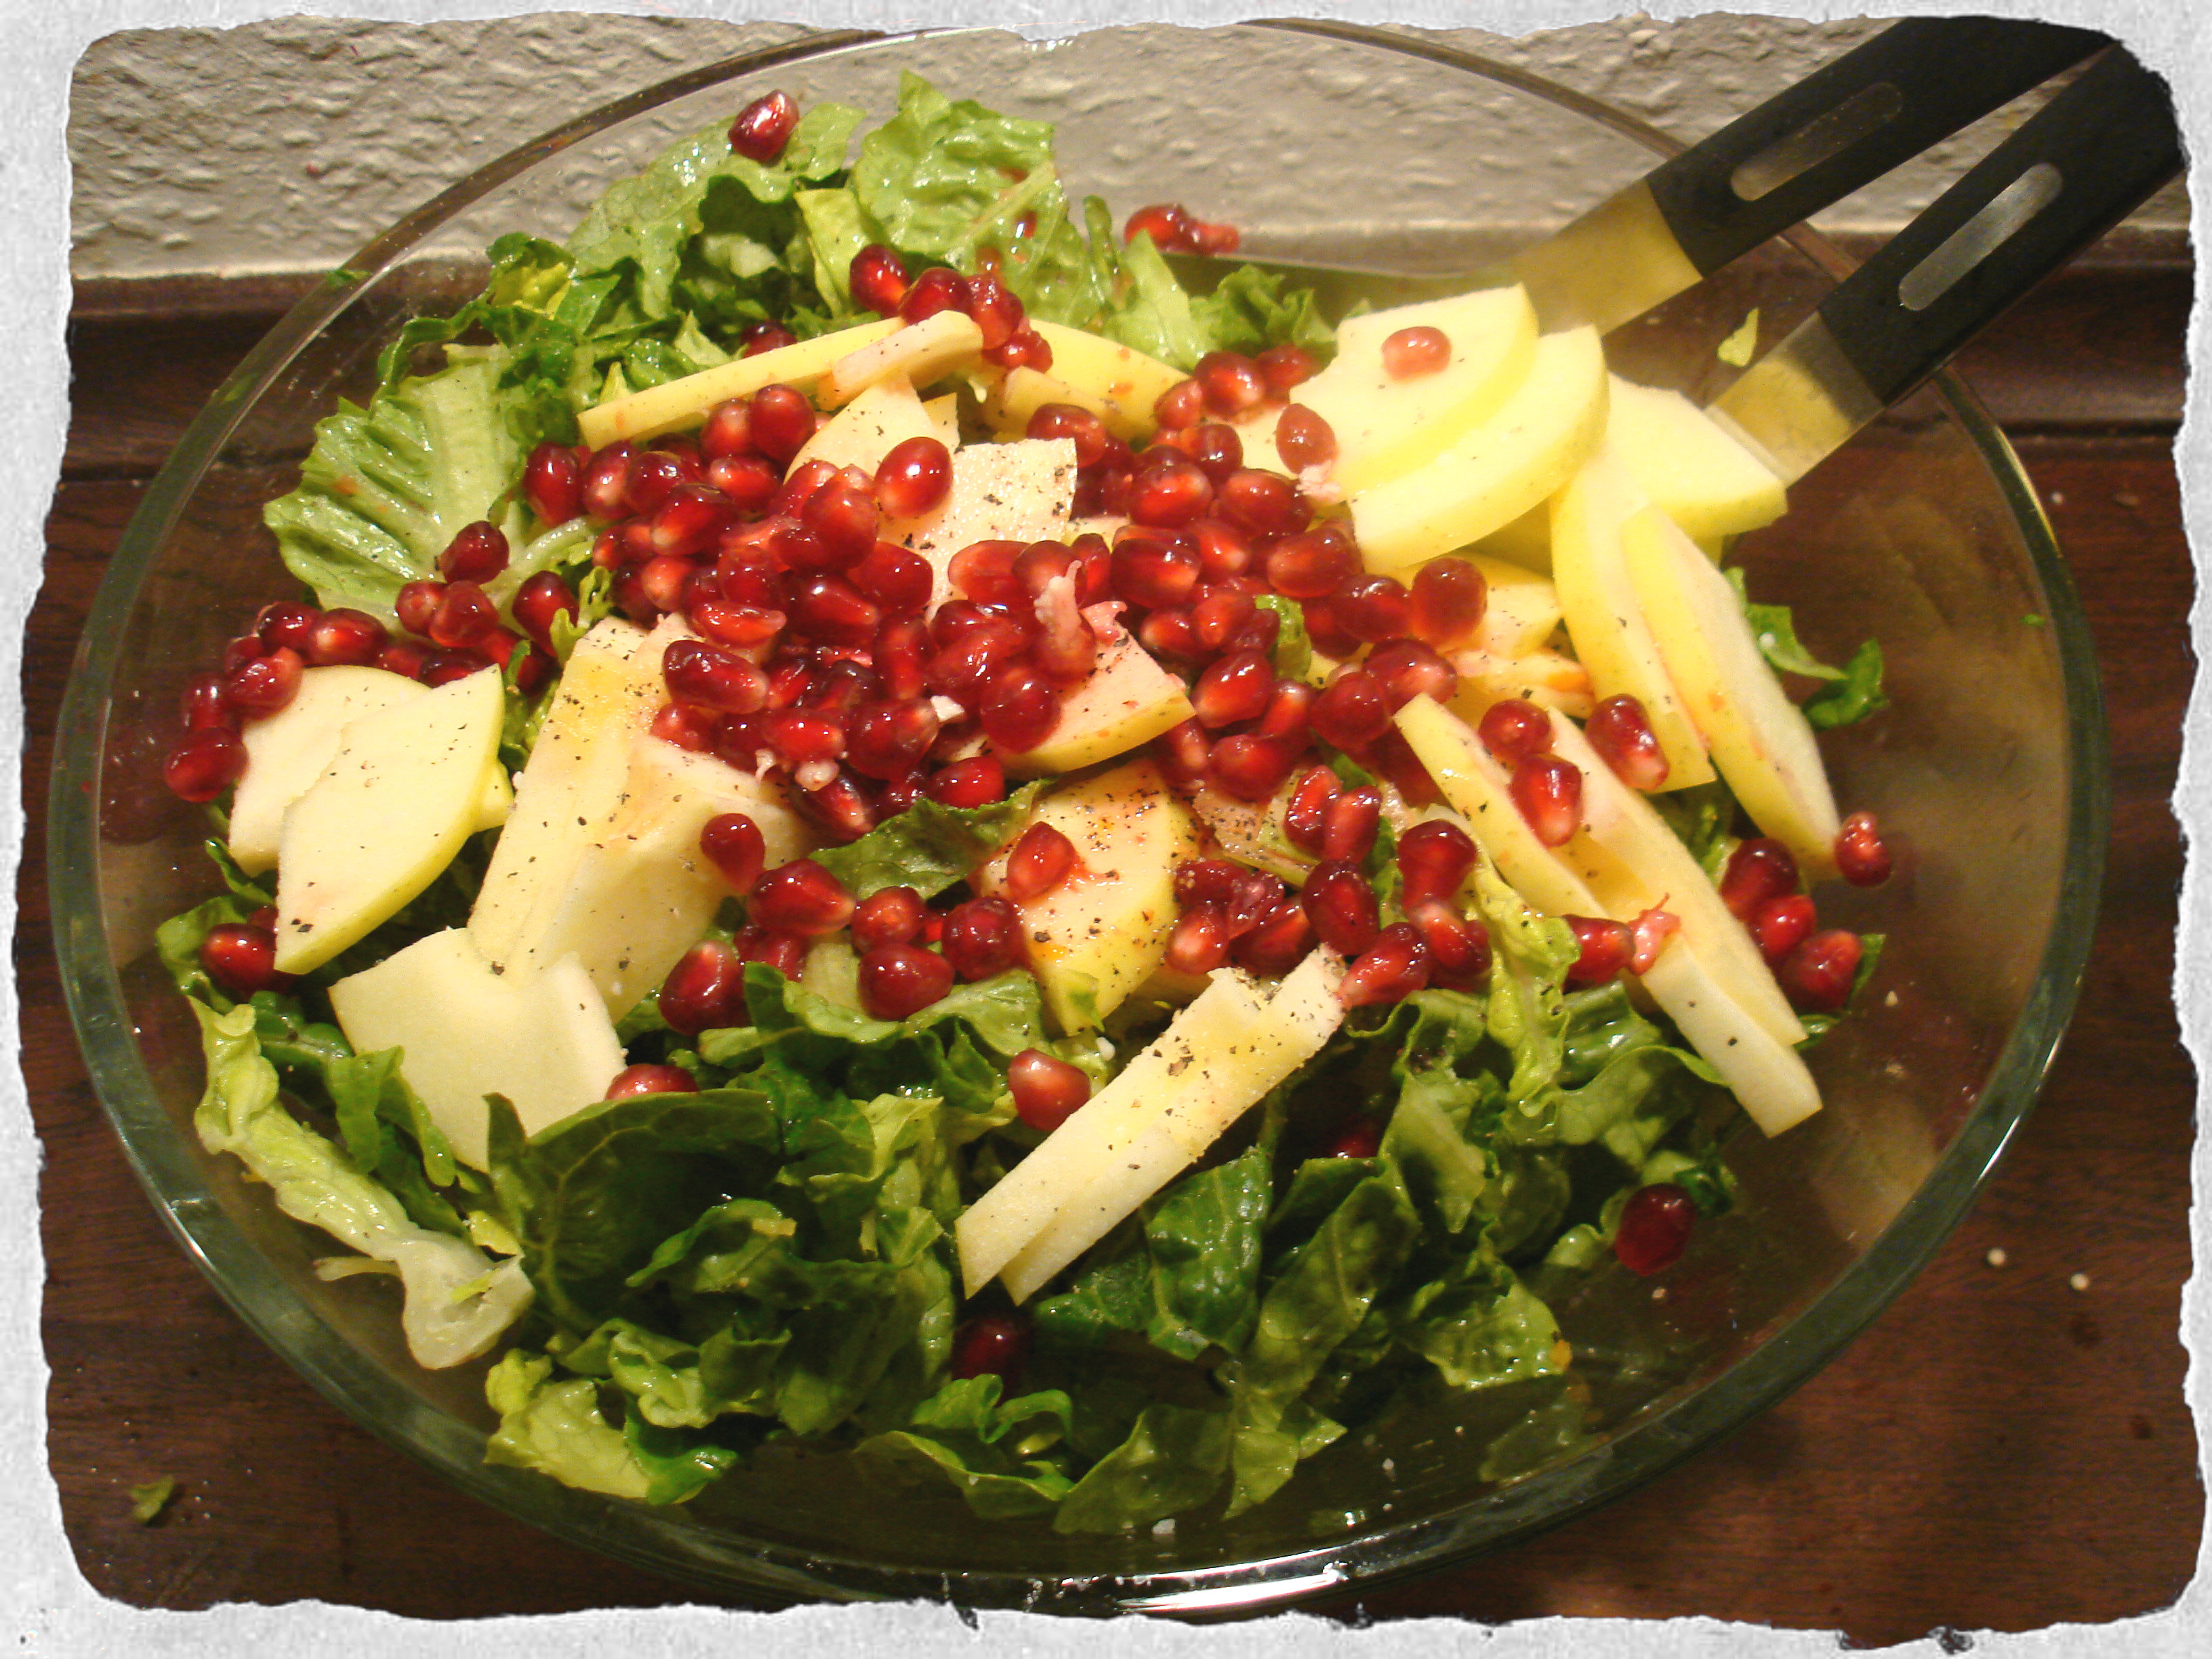 Freash salad with apple, pomegranate and citrus dressing